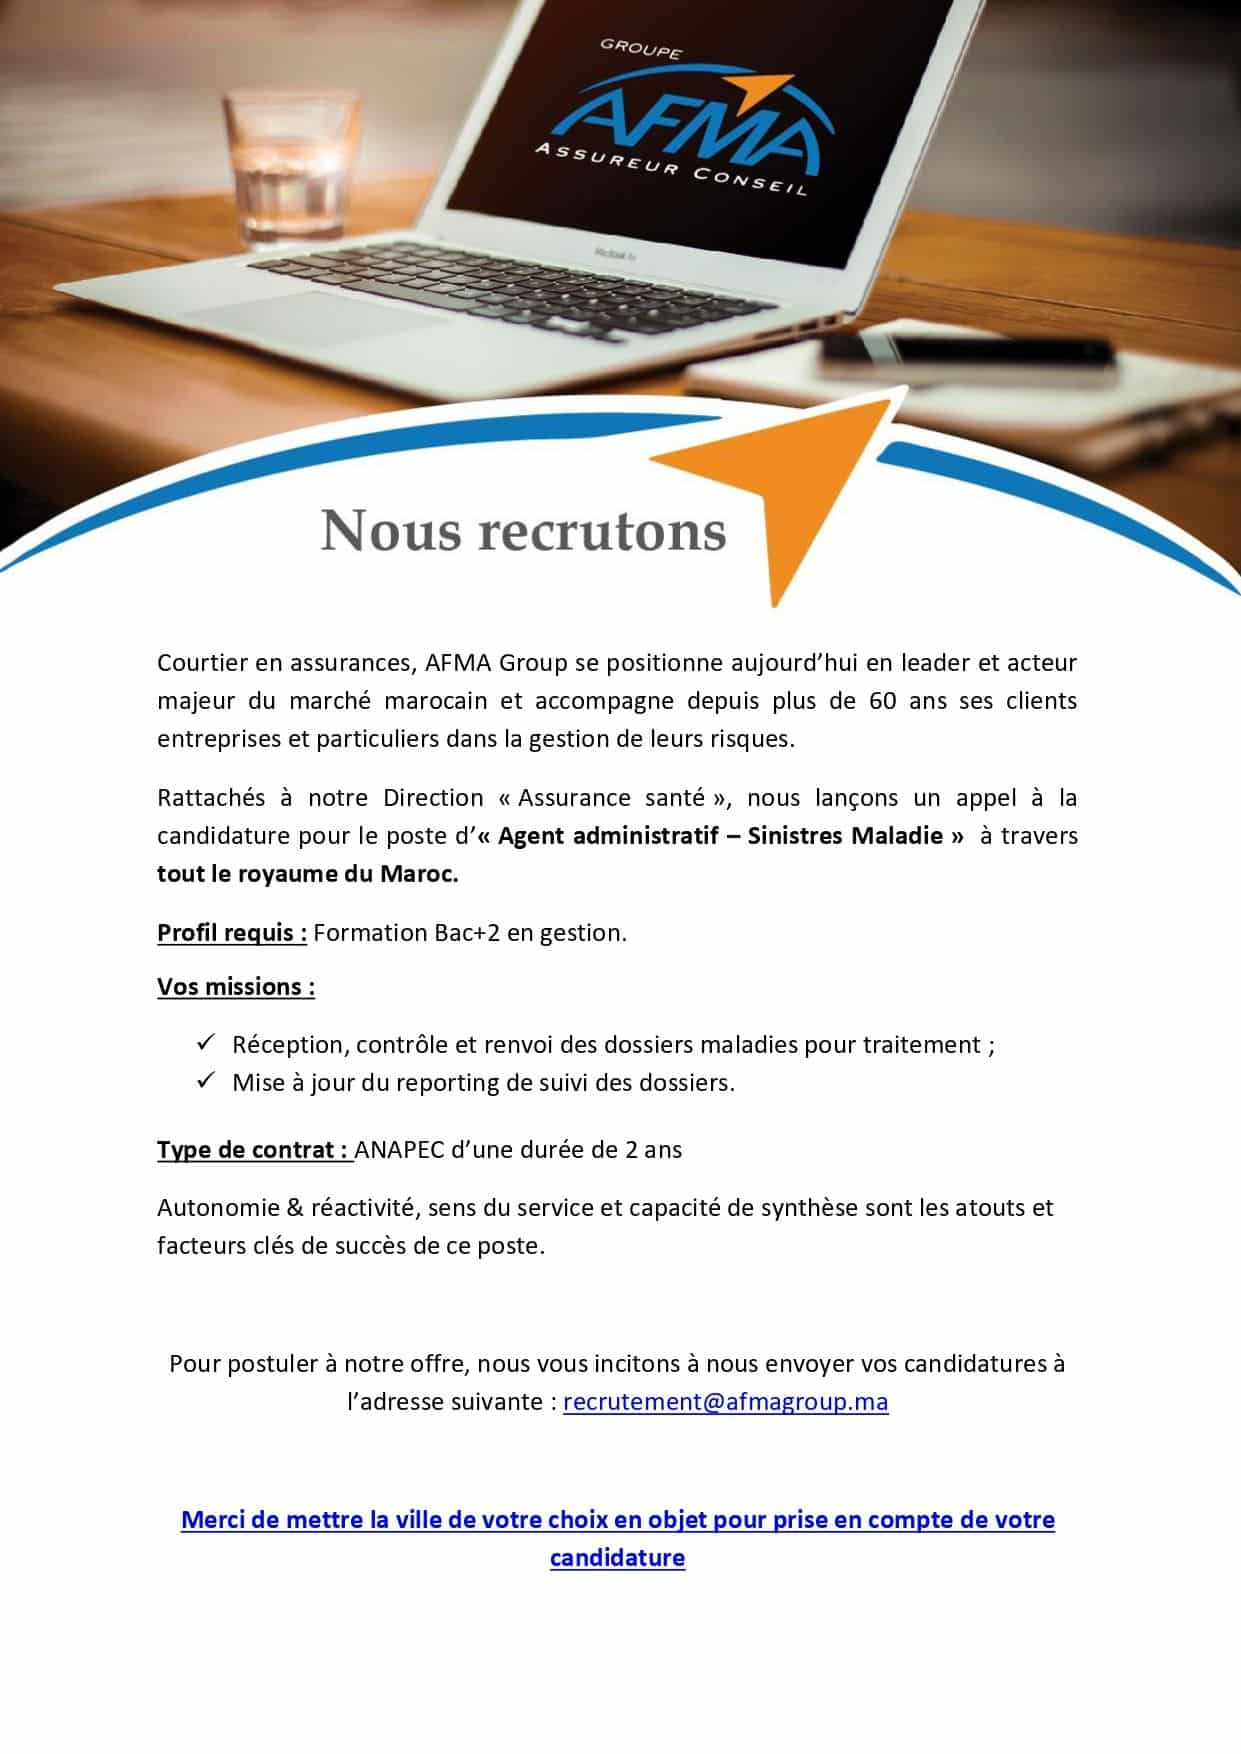 AFMA Group Emploi Recrutement